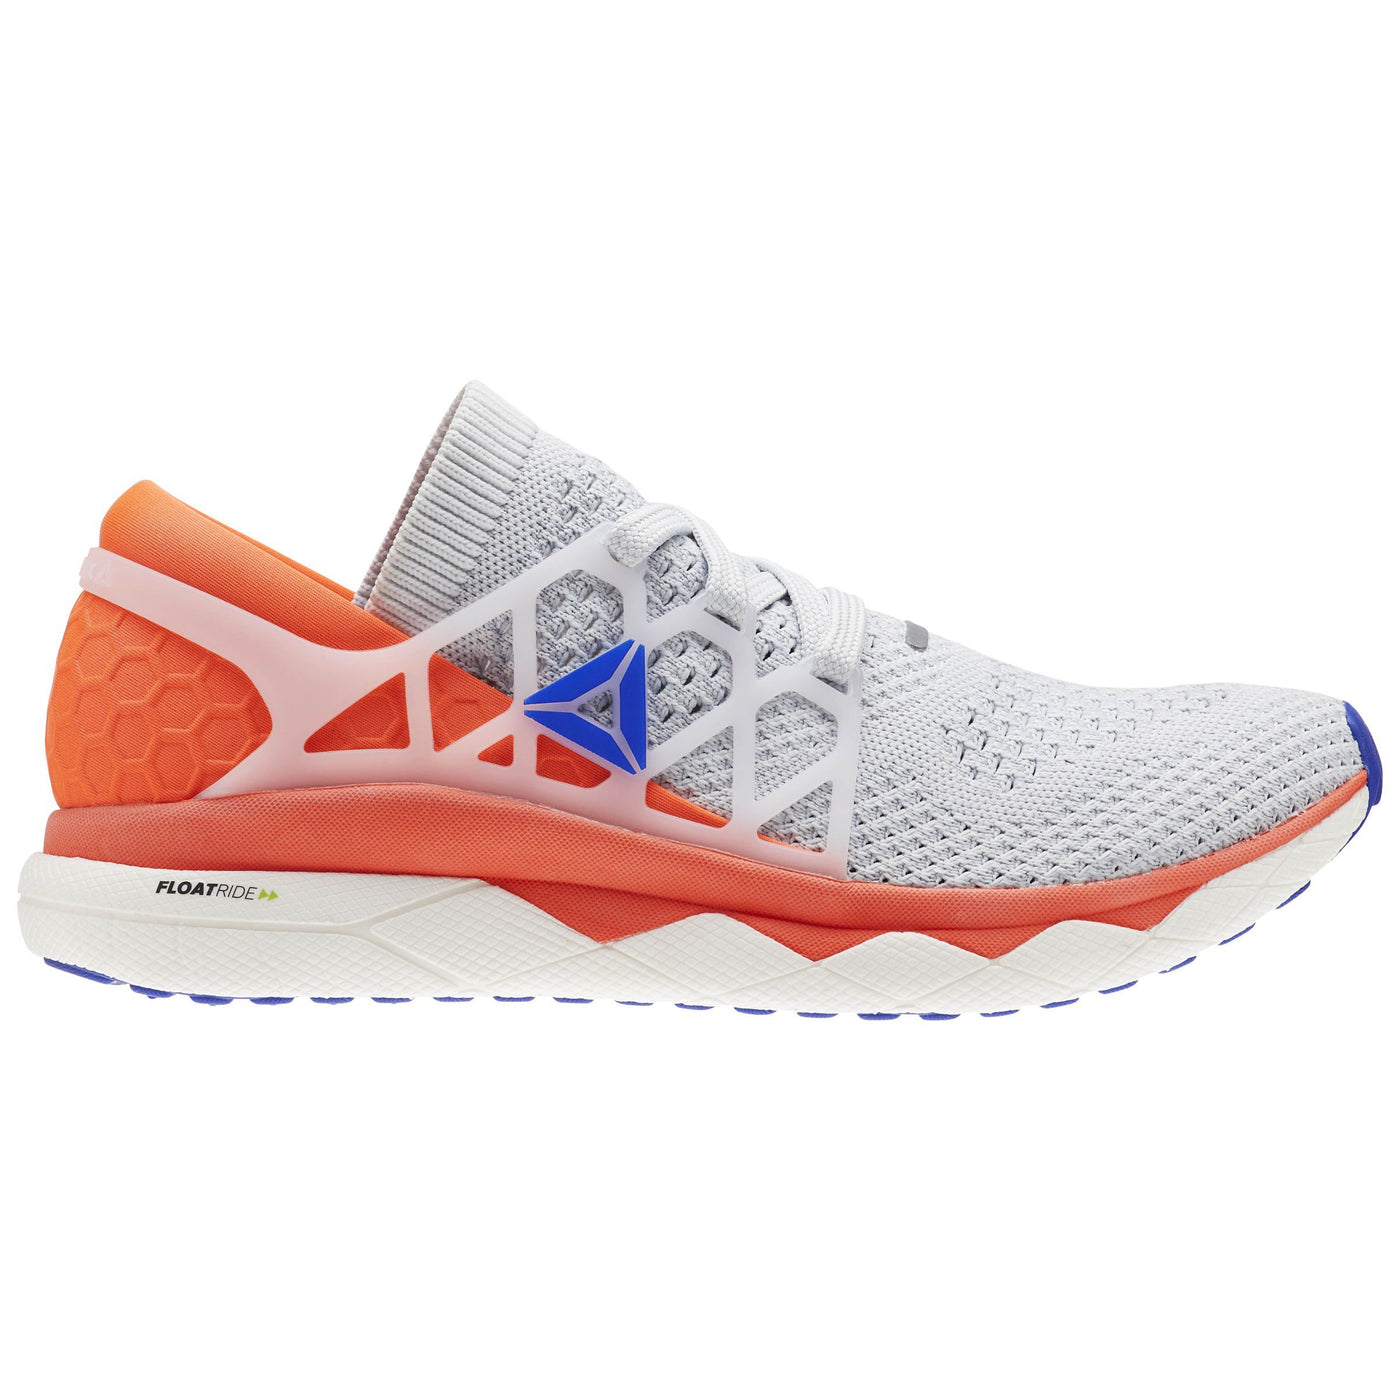 cae9eb517477 Buy Reebok Men Fast Flexweave Running Shoes